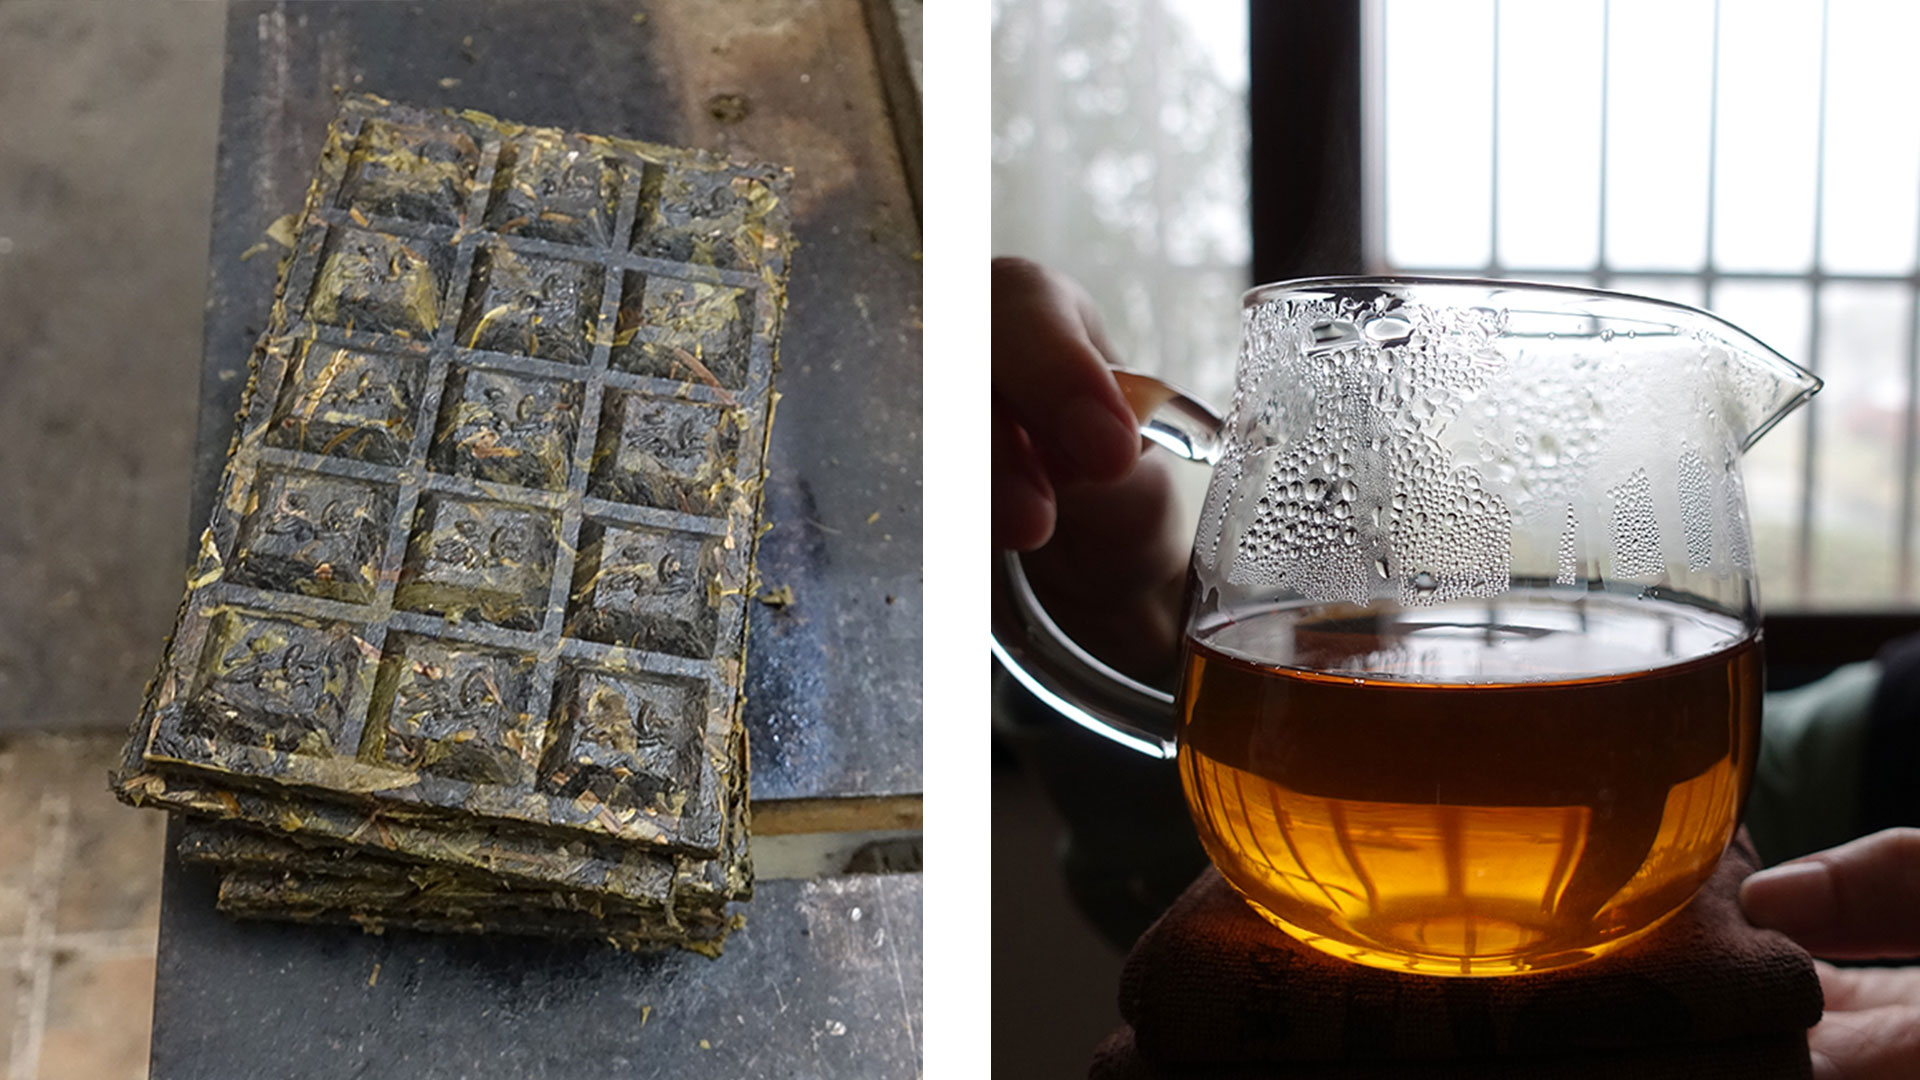 yuntai-pressed-tea-and-tea-elixir